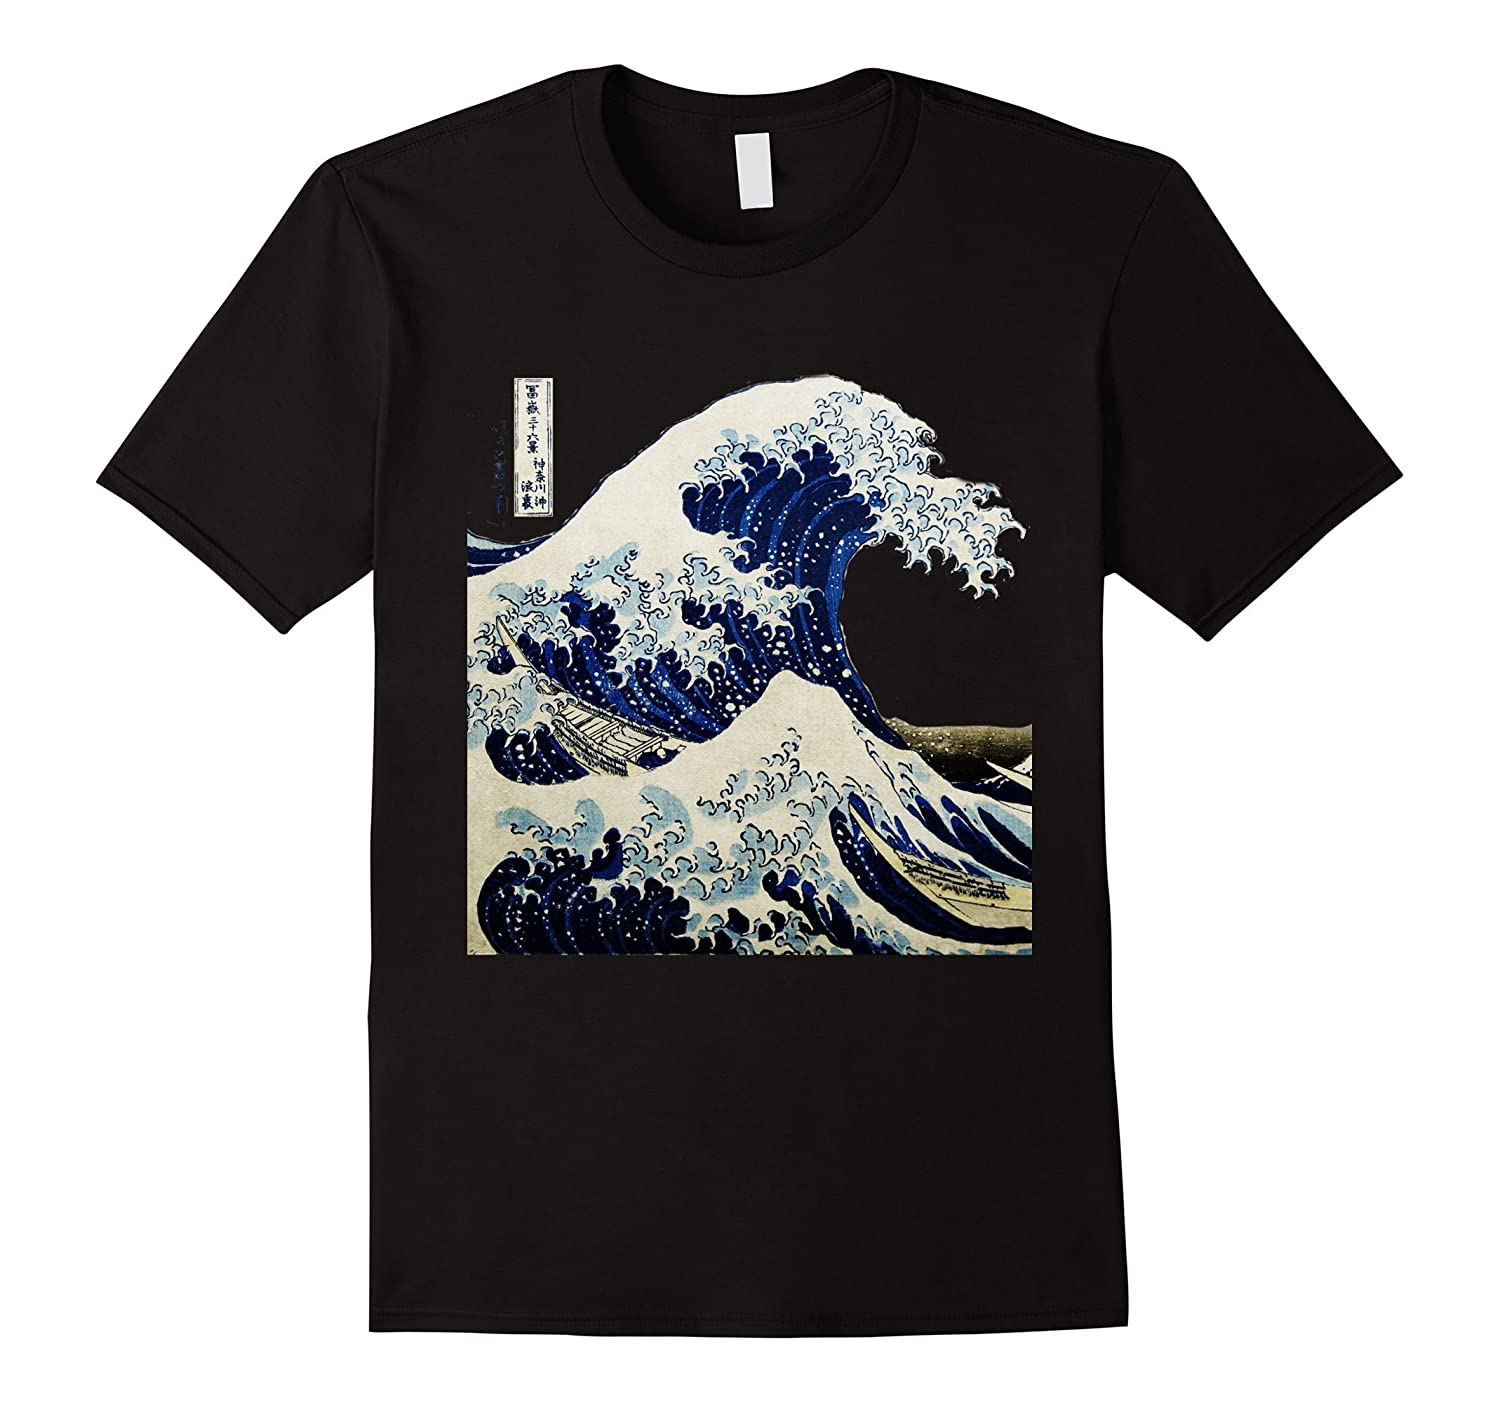 Kanagawa japanese the great wave t shirt rt rateeshirt The great t shirt